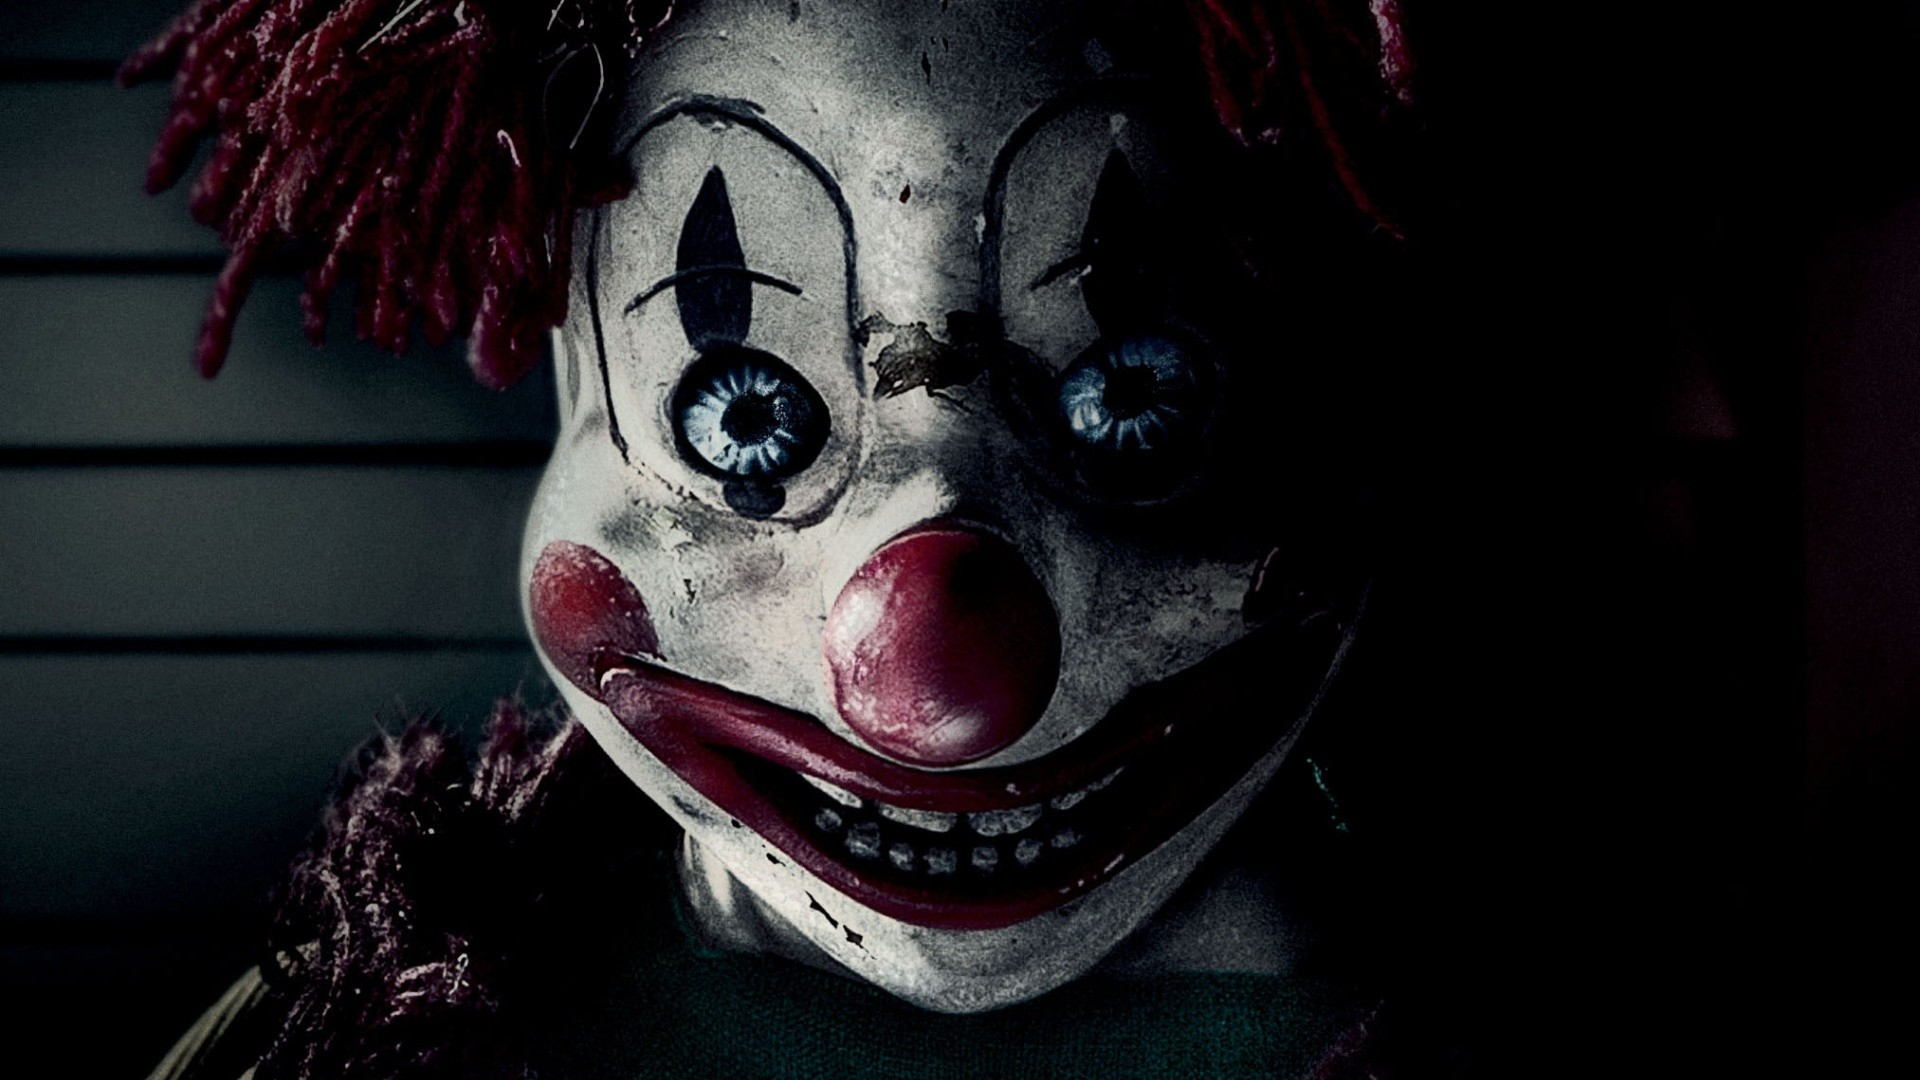 1920x1080 Killer Clown Wallpaper 500×501 Killer Clown Wallpapers (36 Wallpapers) |  Adorable Wallpapers